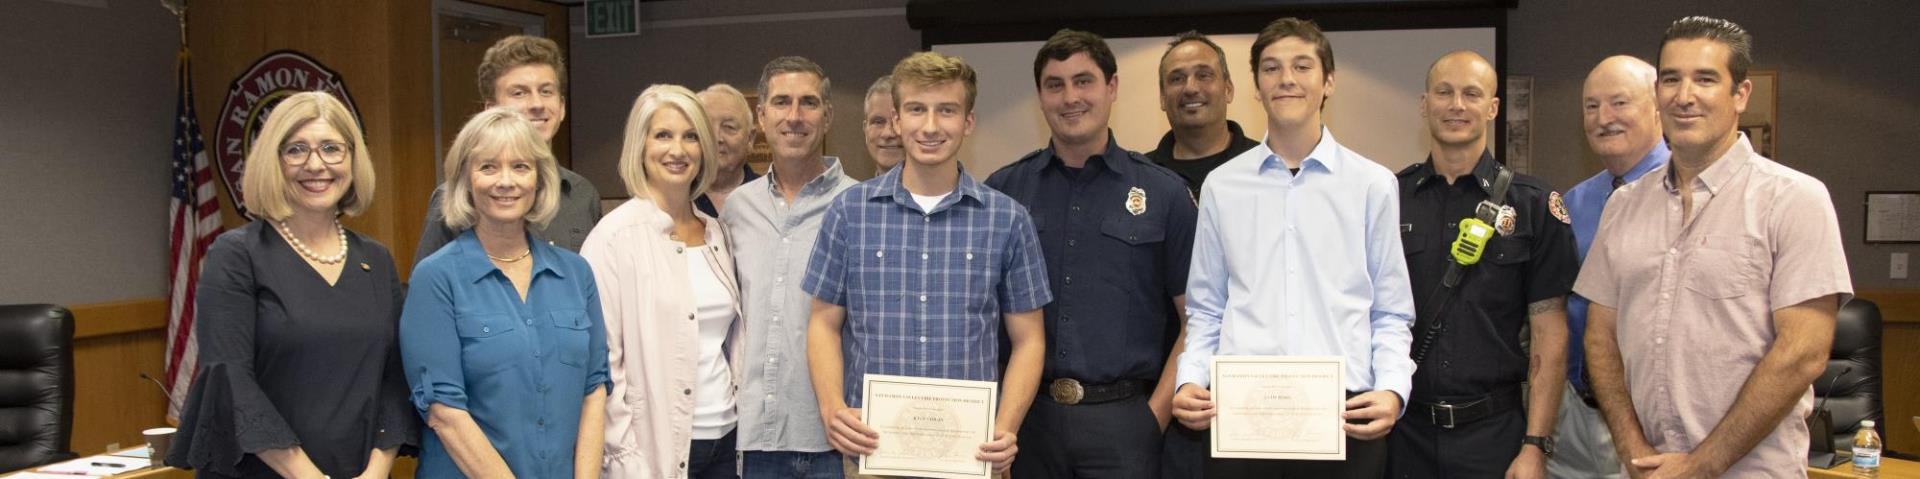 iQuest Students Honored at June Board Meeting